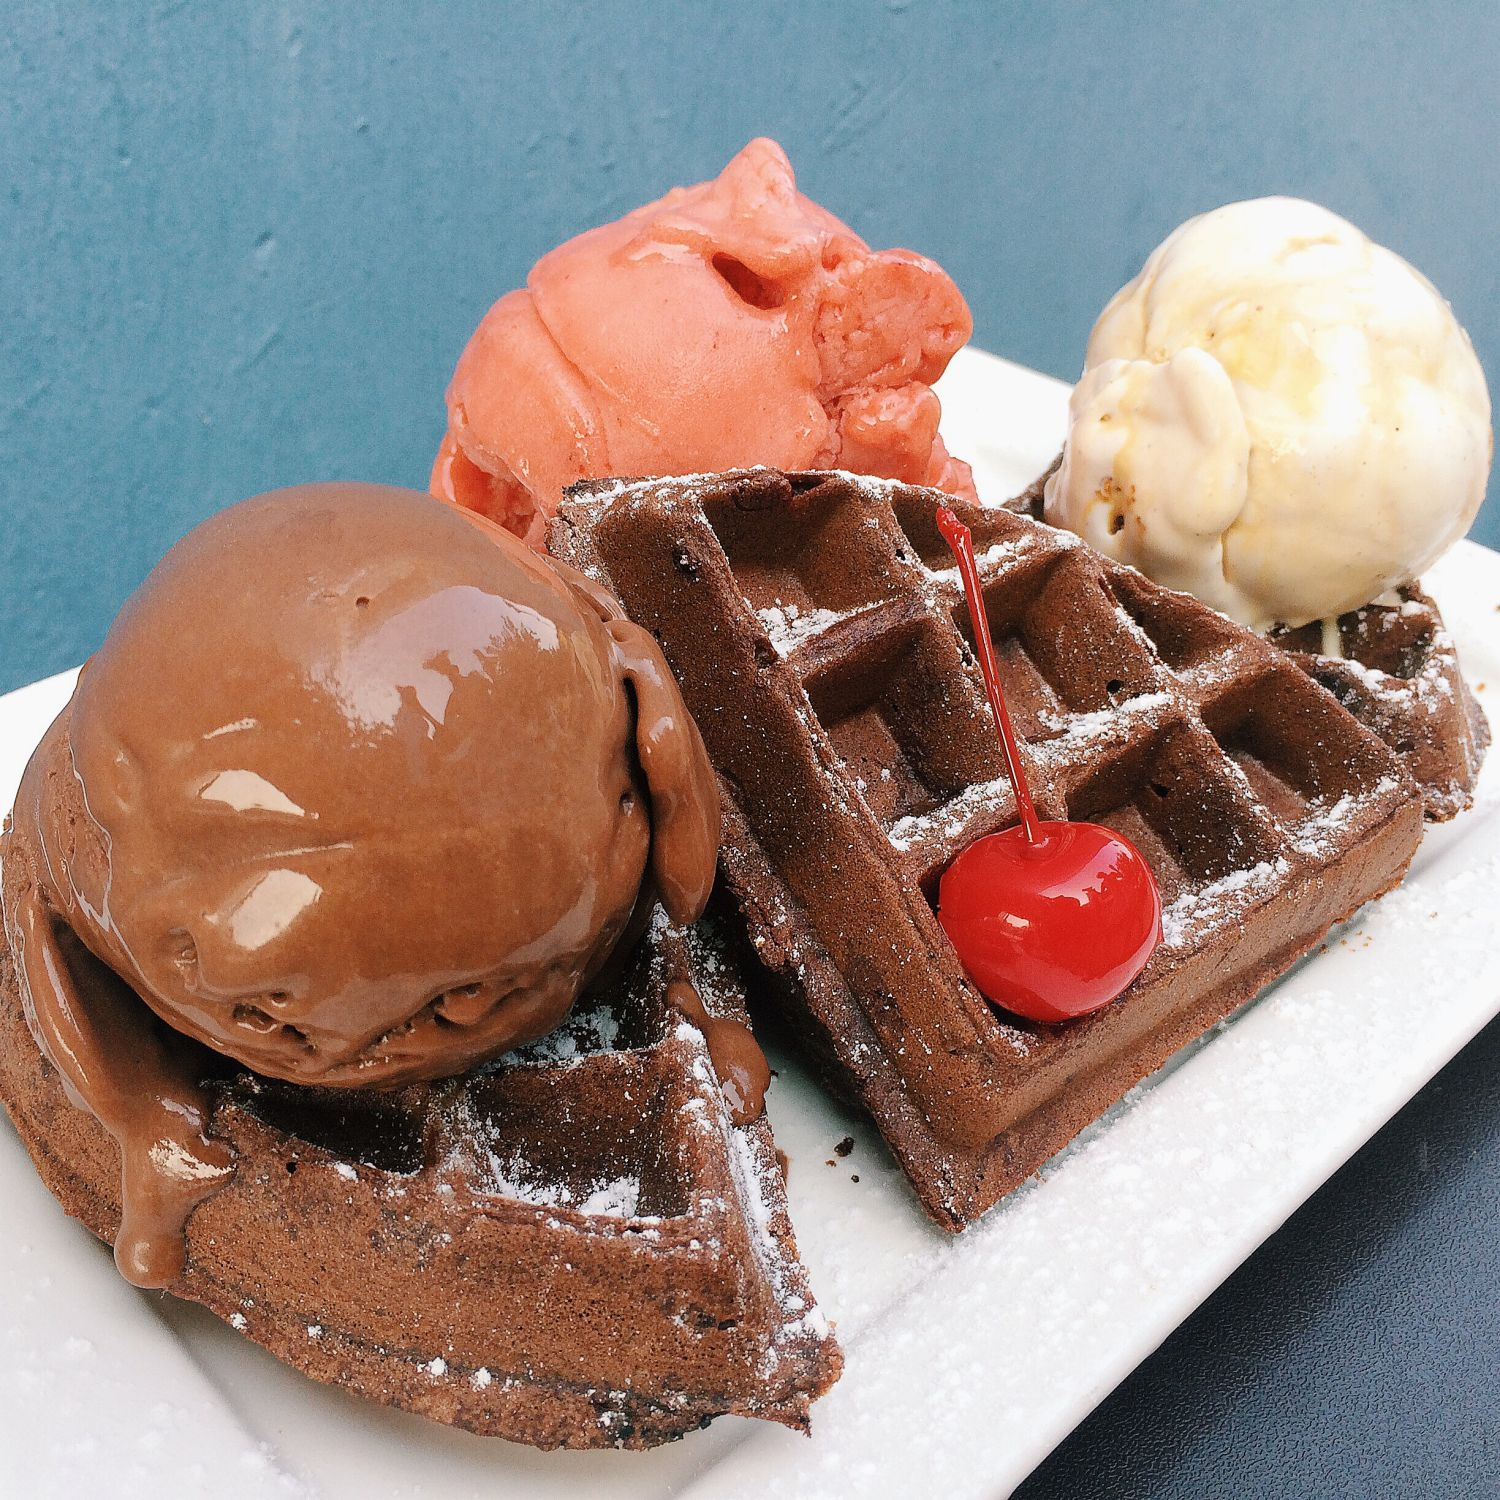 Chocolate Belgian Waffle with Ice Cream - Milk and Honey Gelato